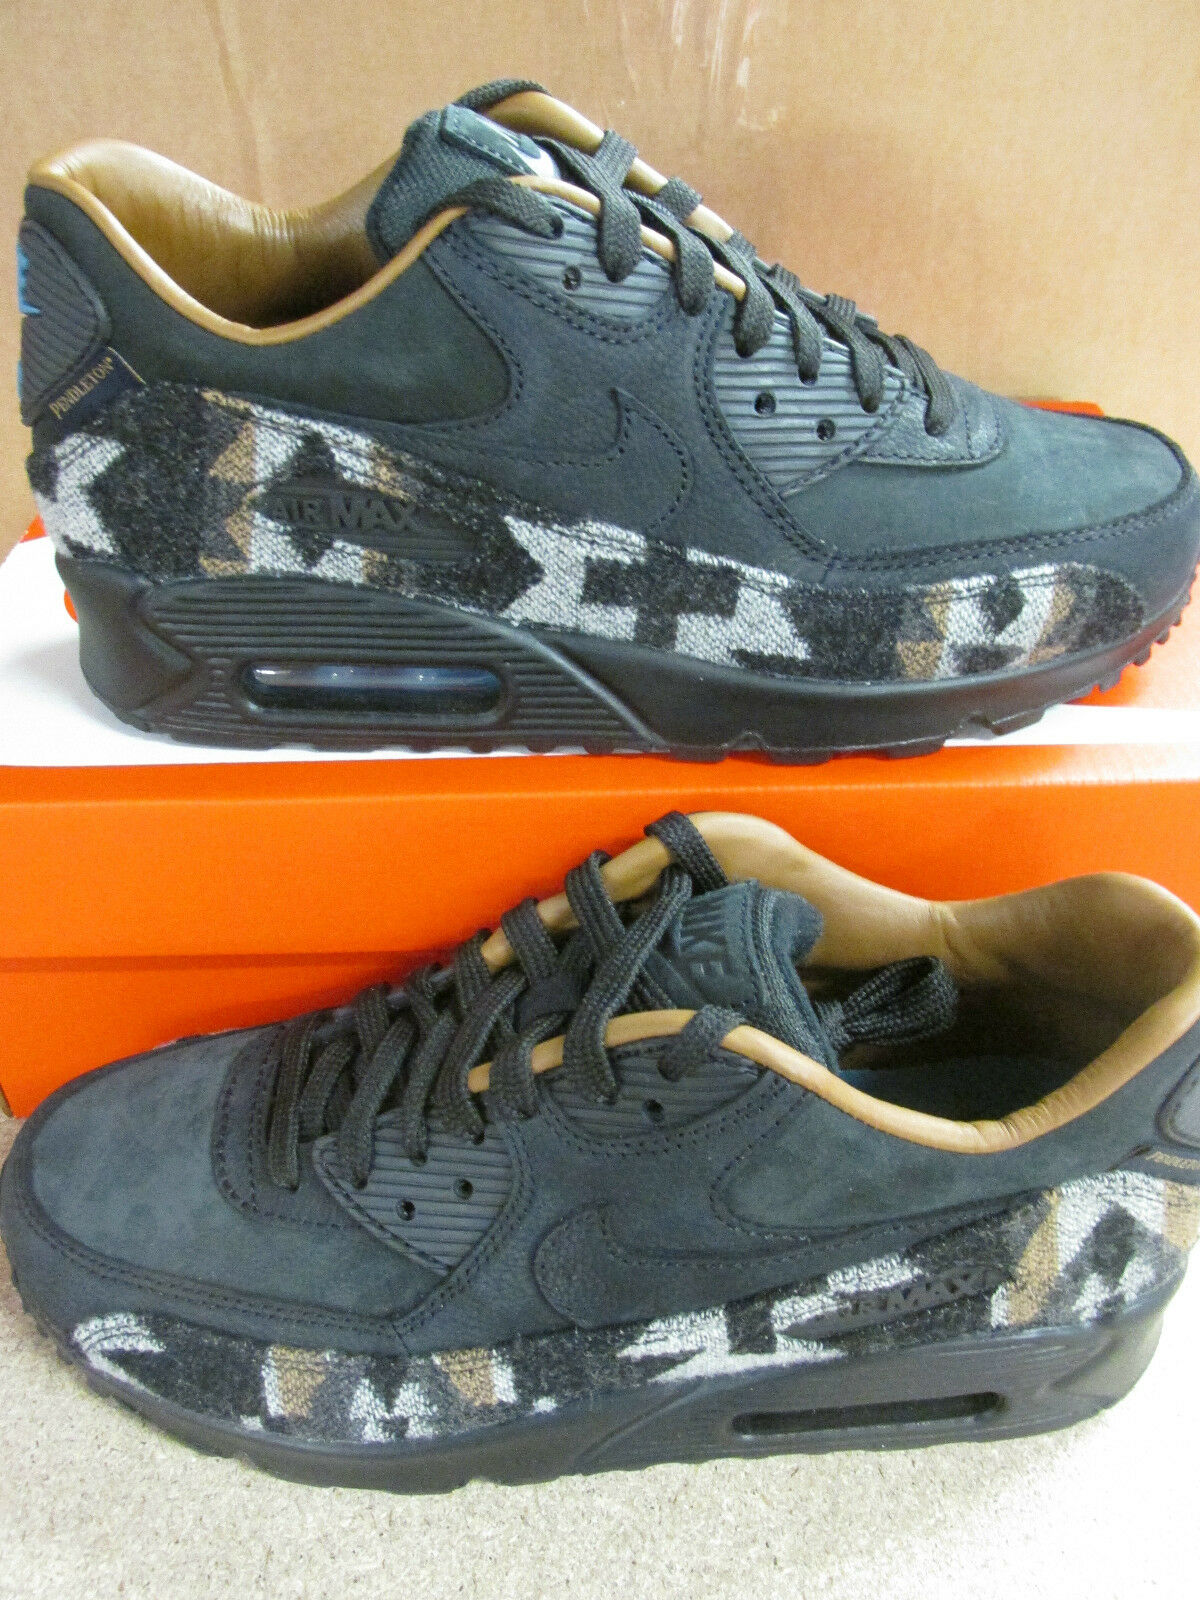 the latest a464e da7ce Nike air max 90 PND QS mens running trainers trainers trainers 825512 004  sneakers shoes a21520